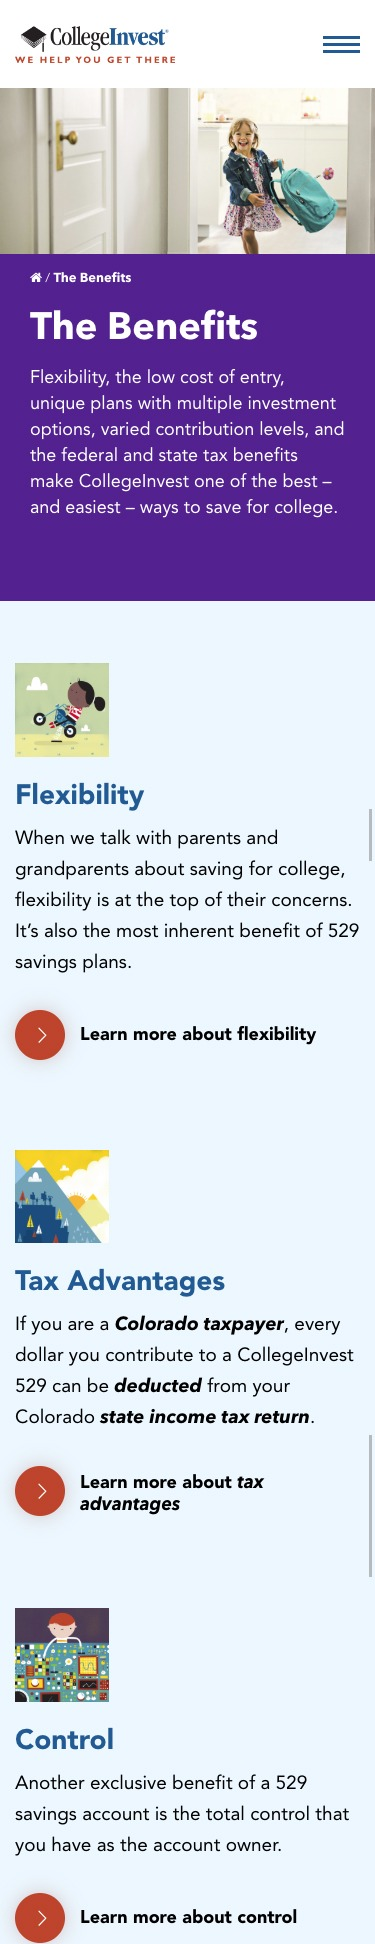 College Invest website mobile